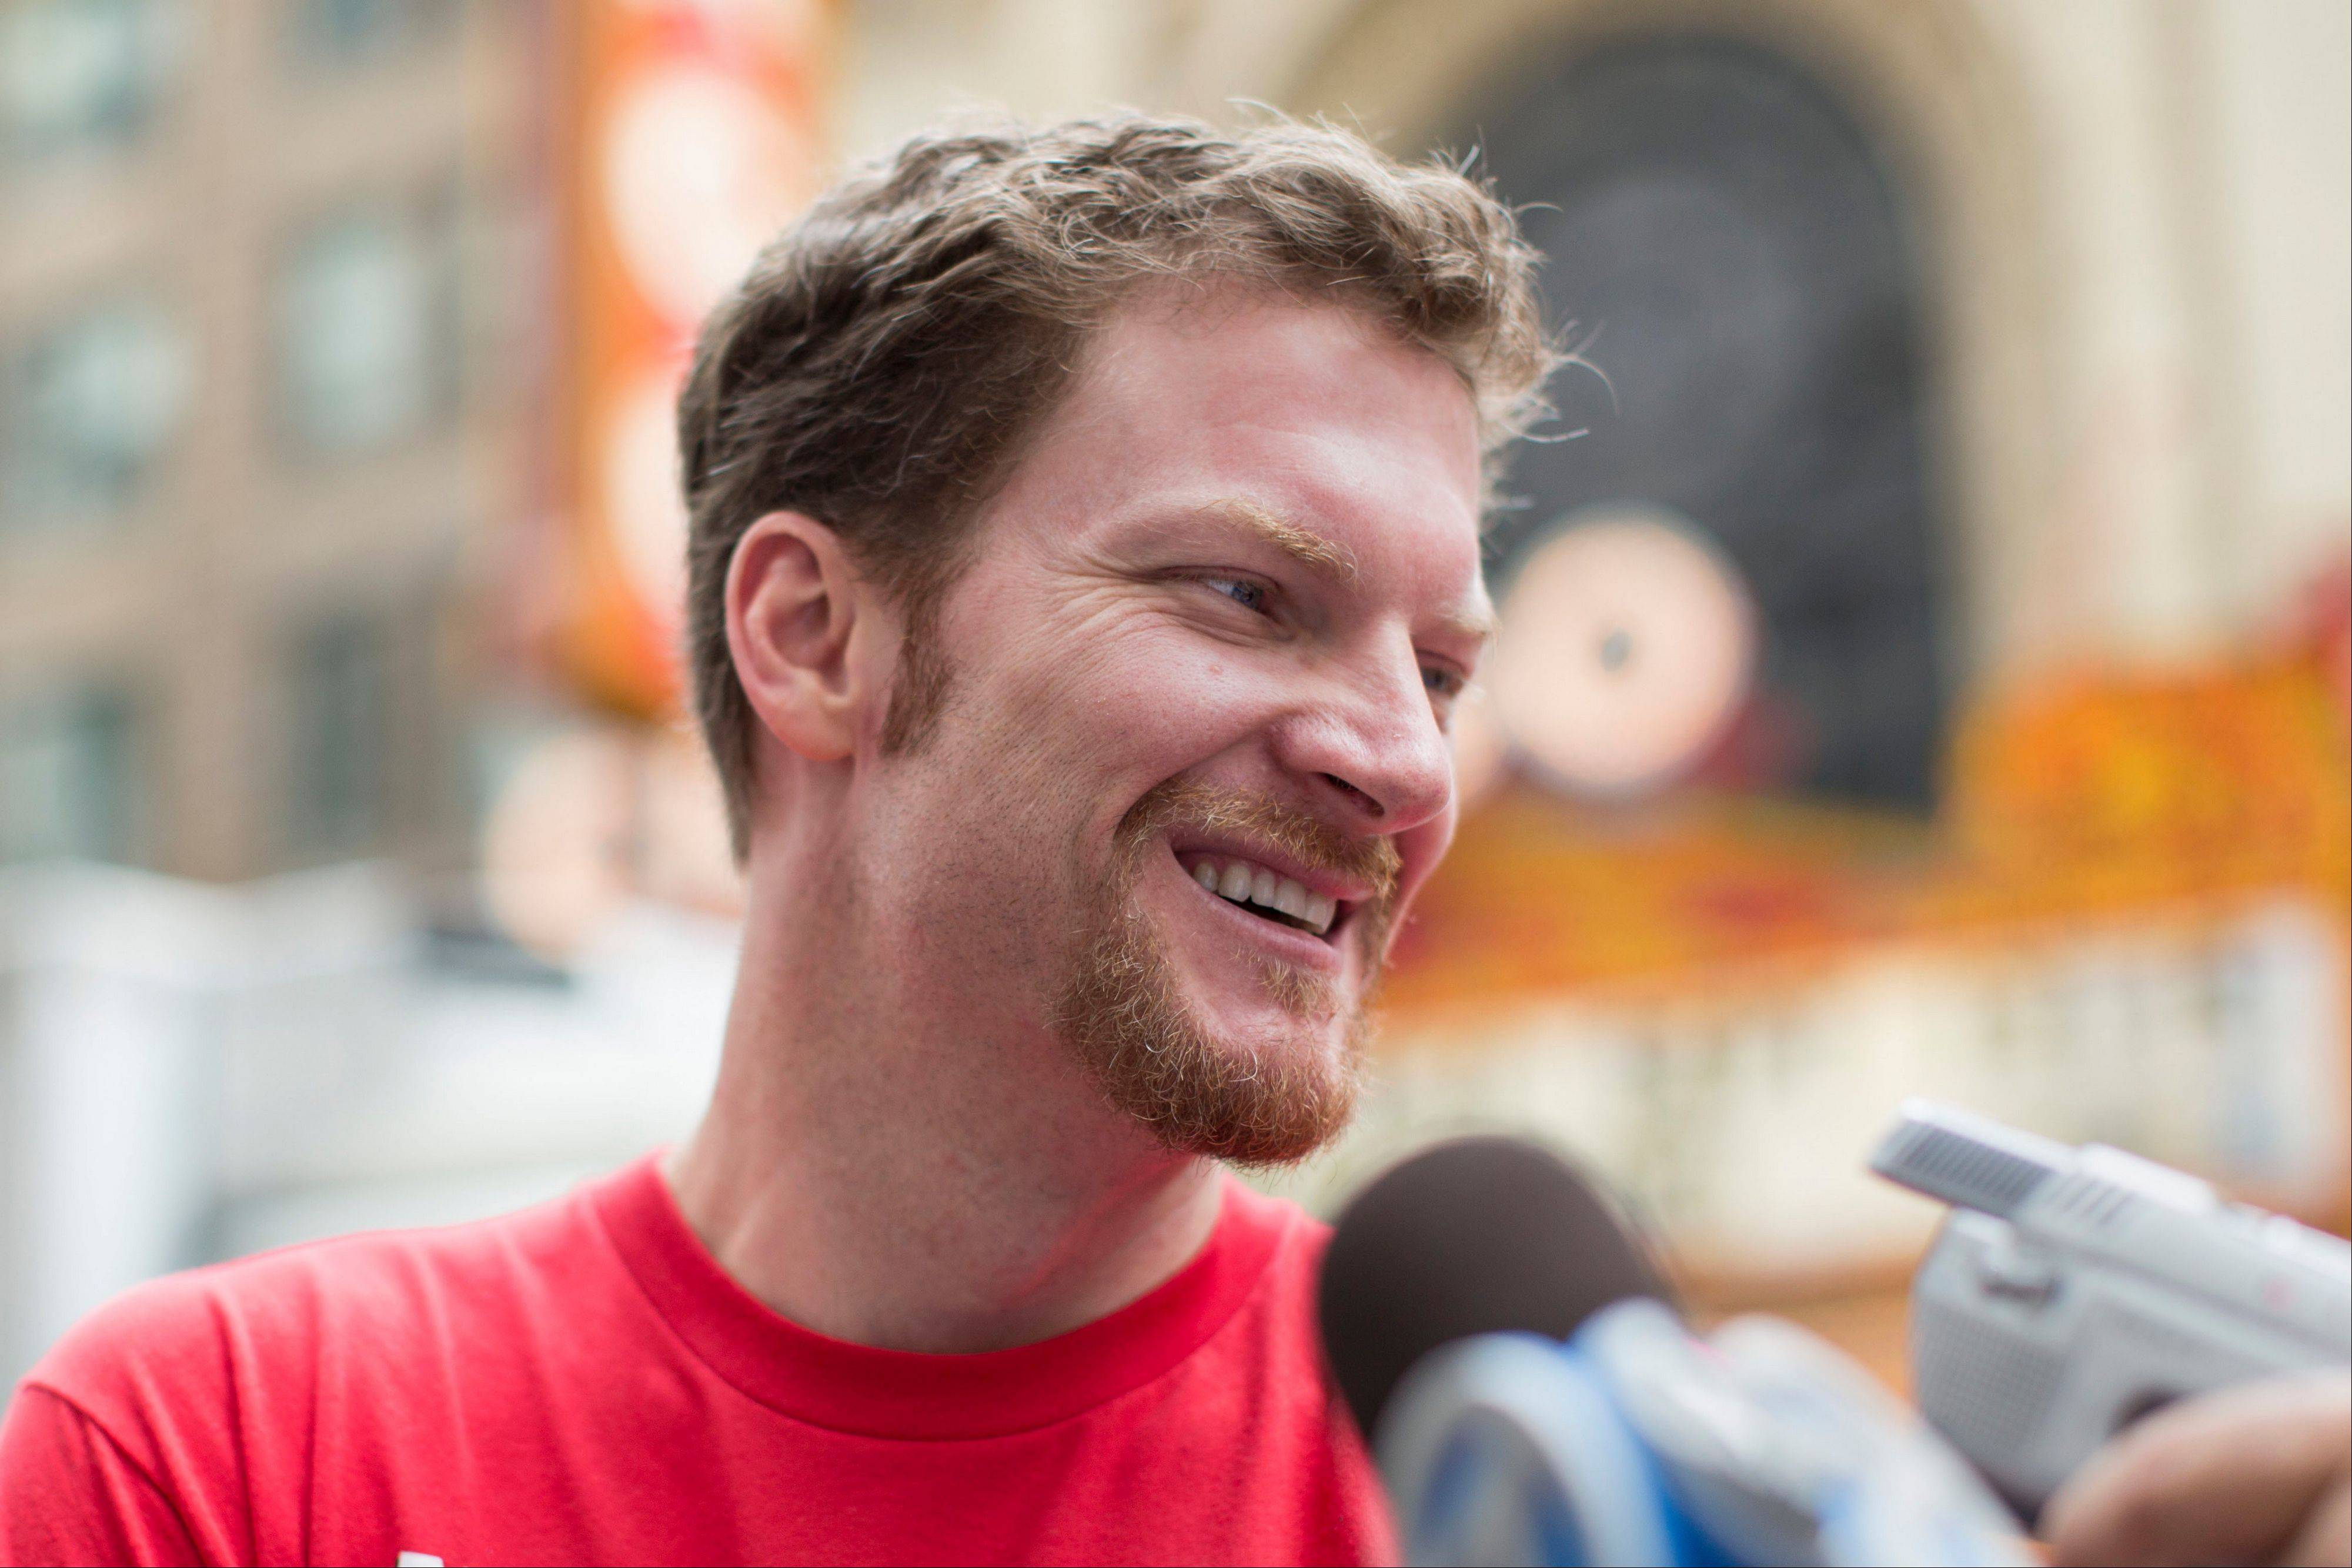 Dale Earnhardt Jr. speaks at a news conference Monday after he performed a burnout in front of the Chicago Theatre.